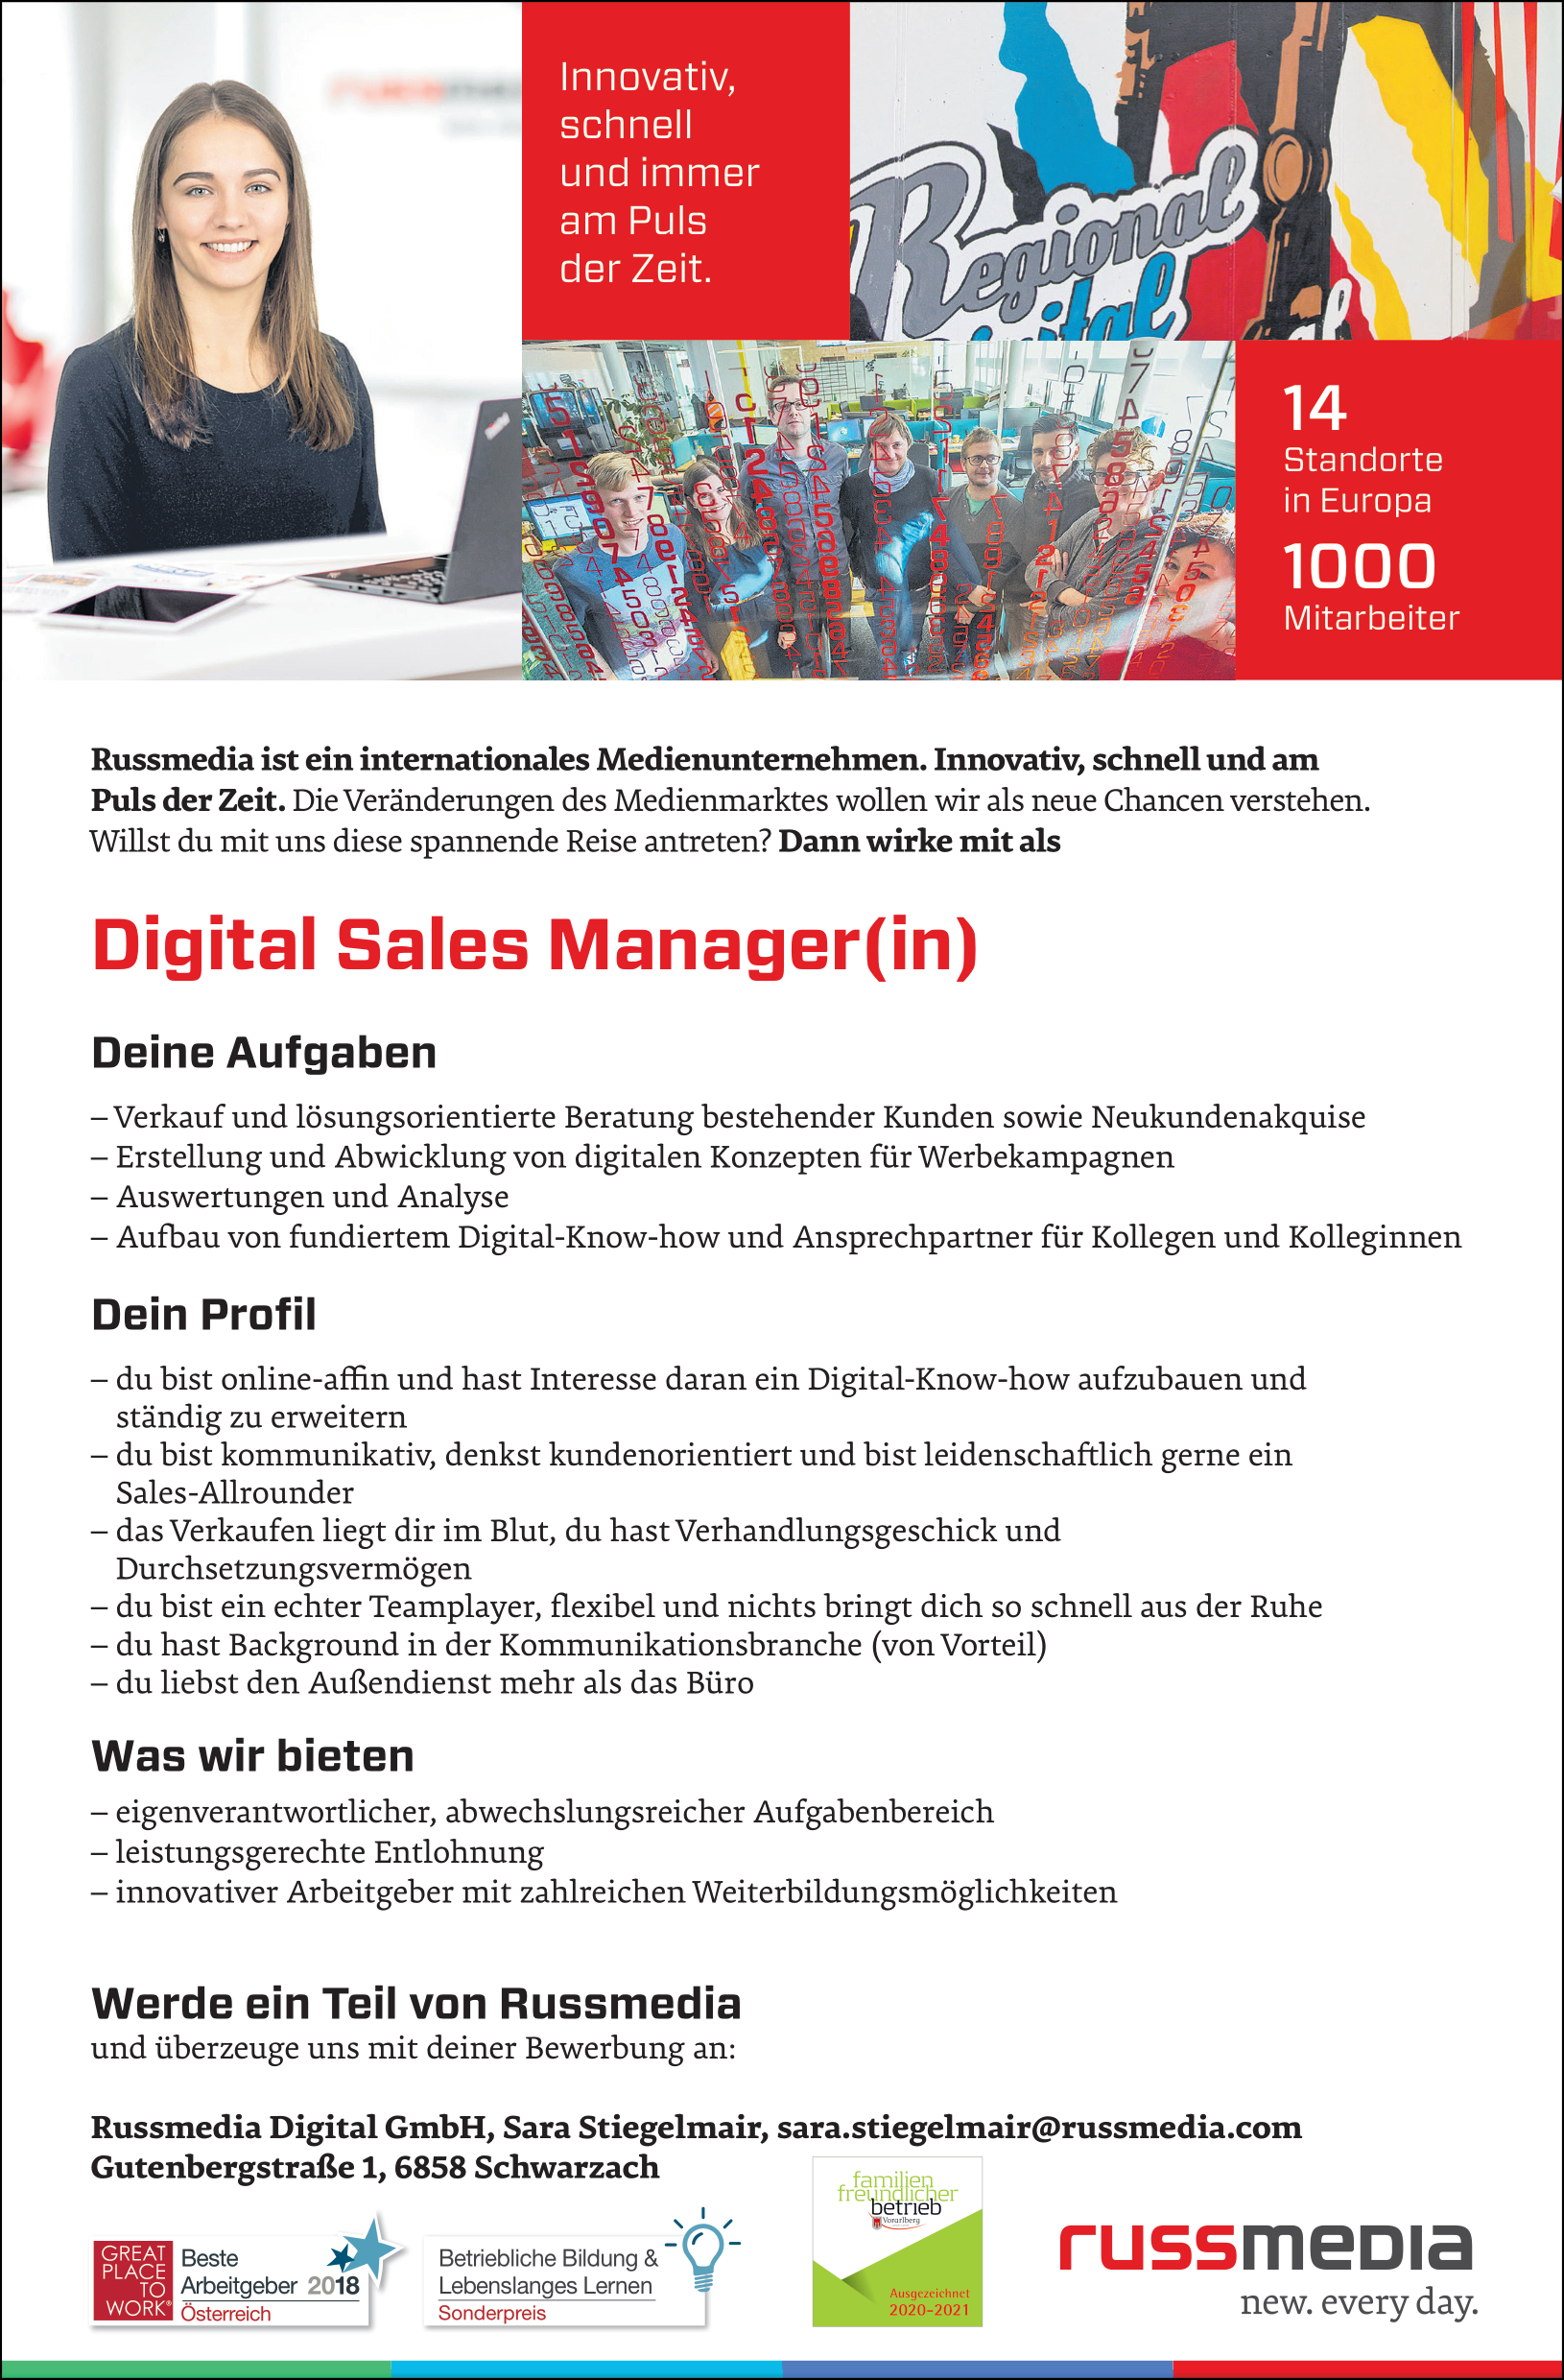 Digital Sales Manager(in)